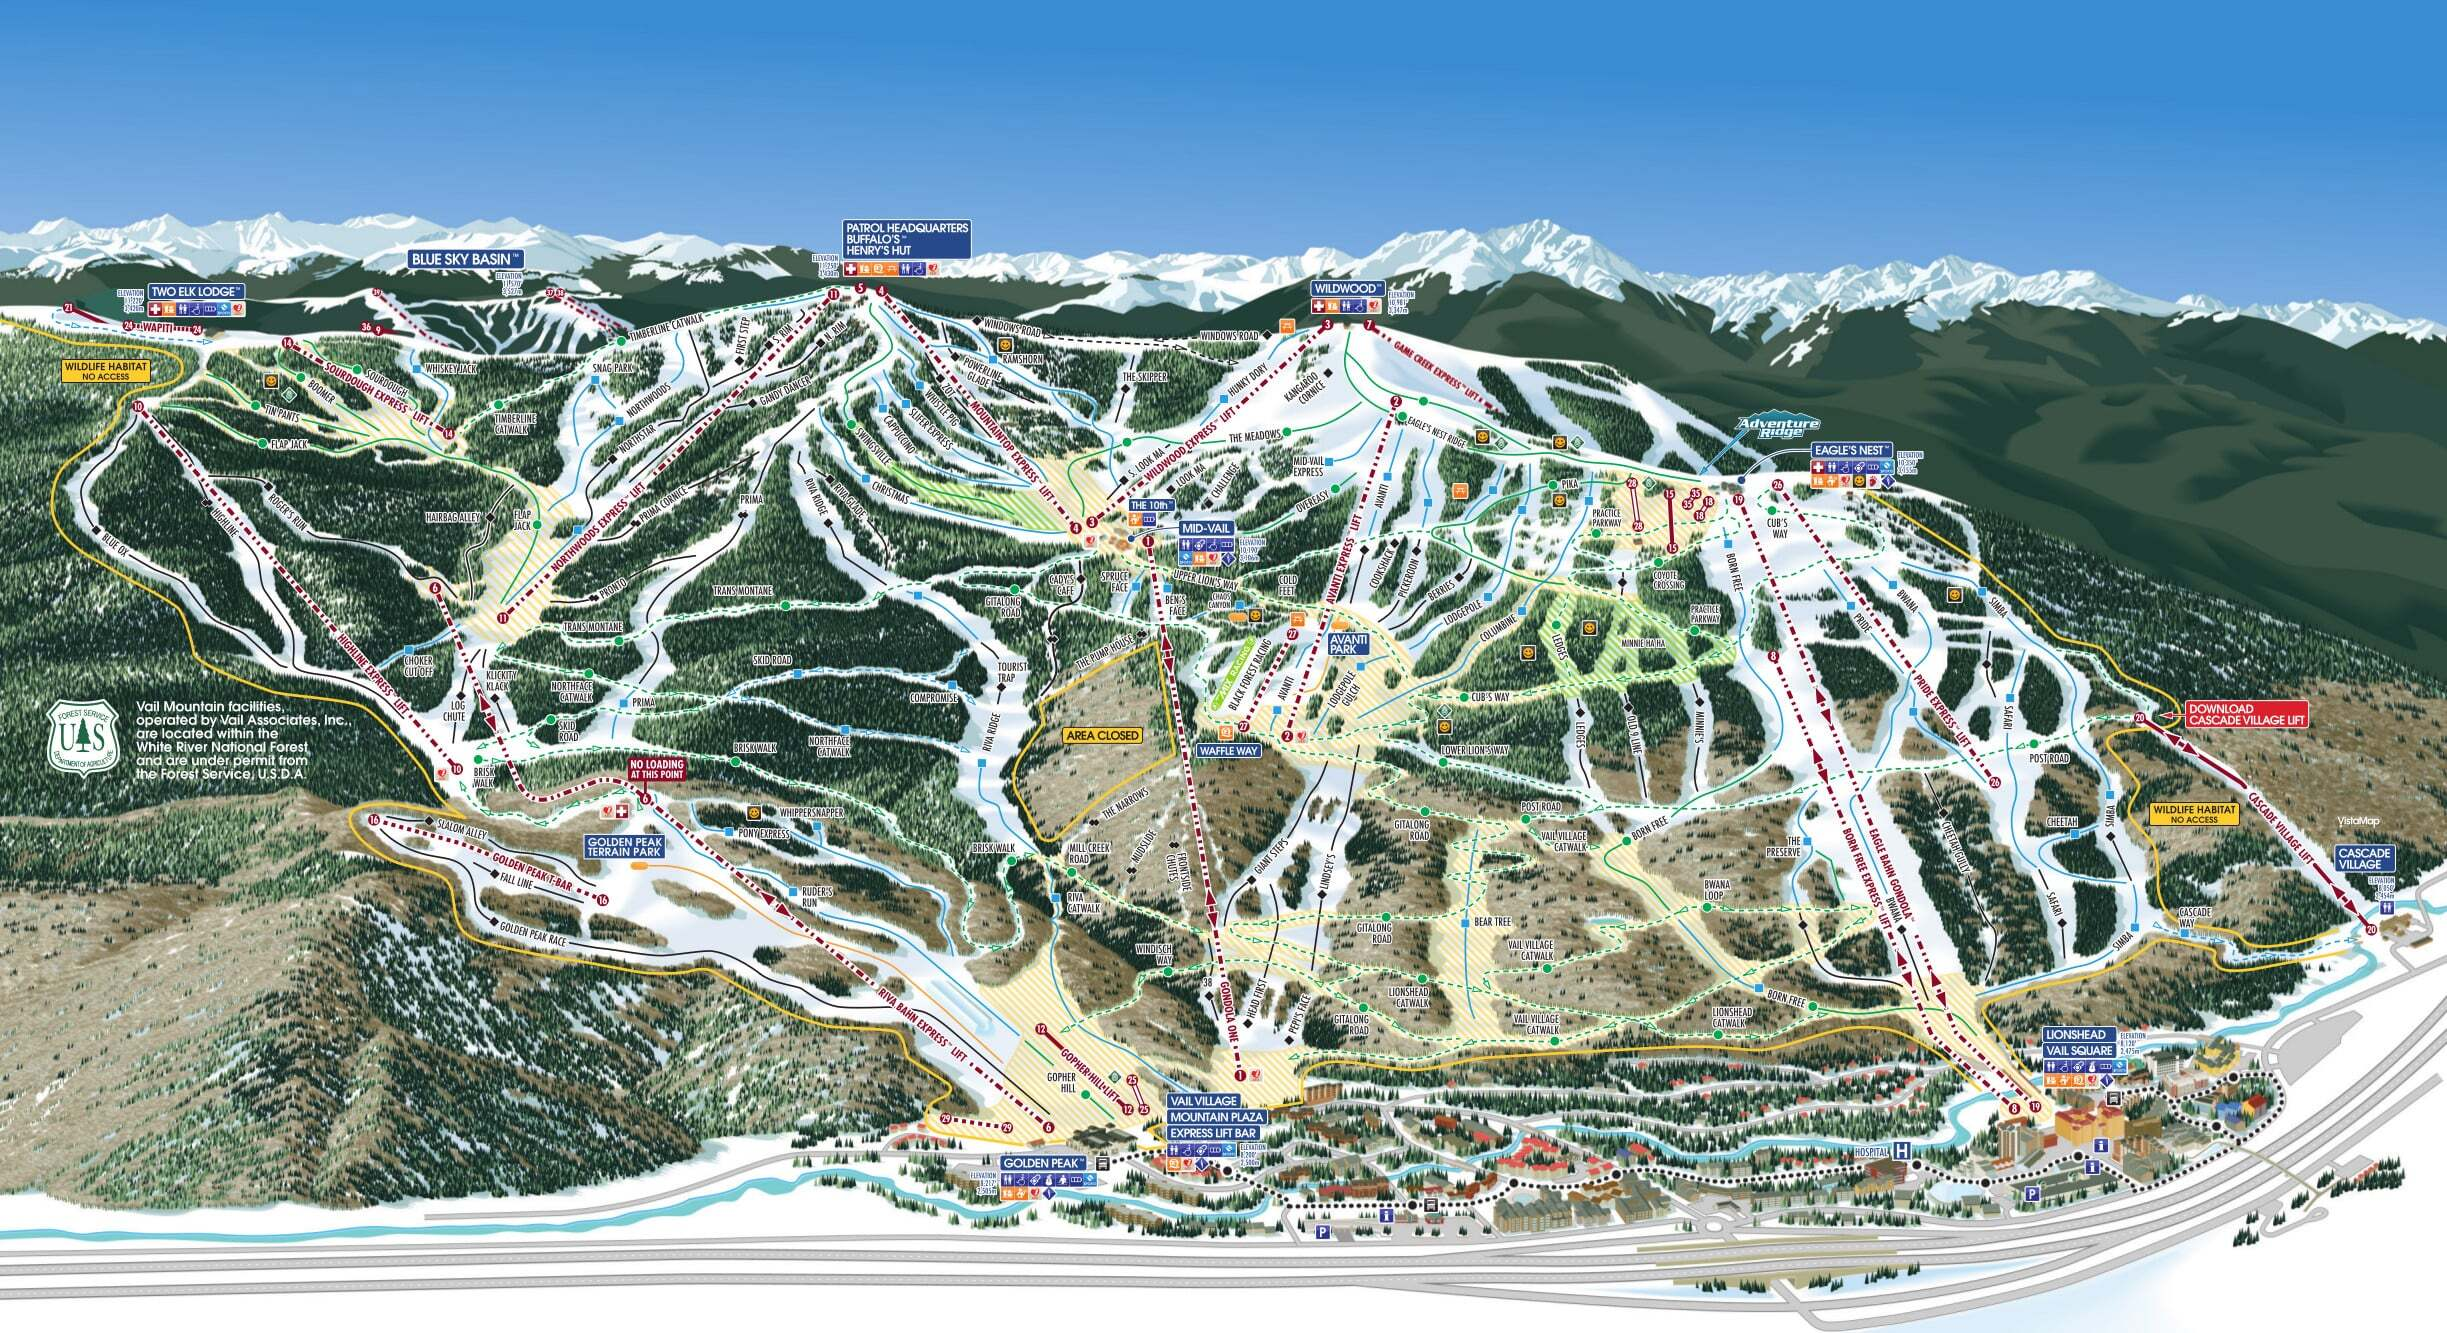 Vail Piste / Trail Map